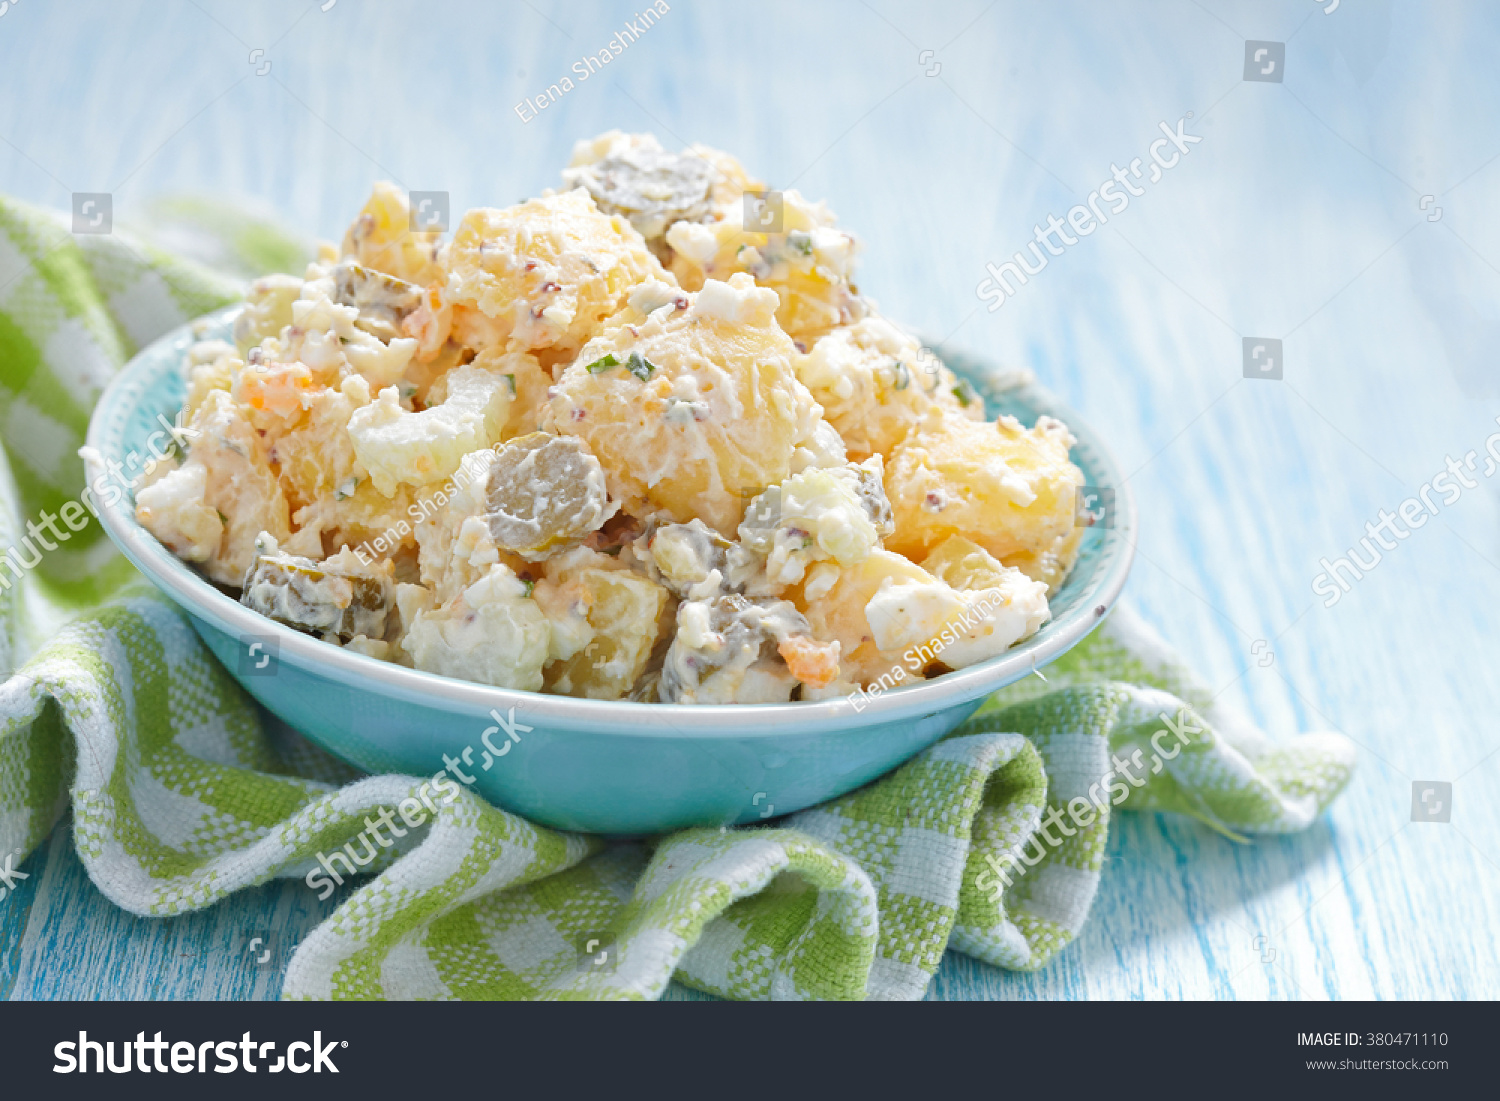 Potato Salad With Cream And Chives